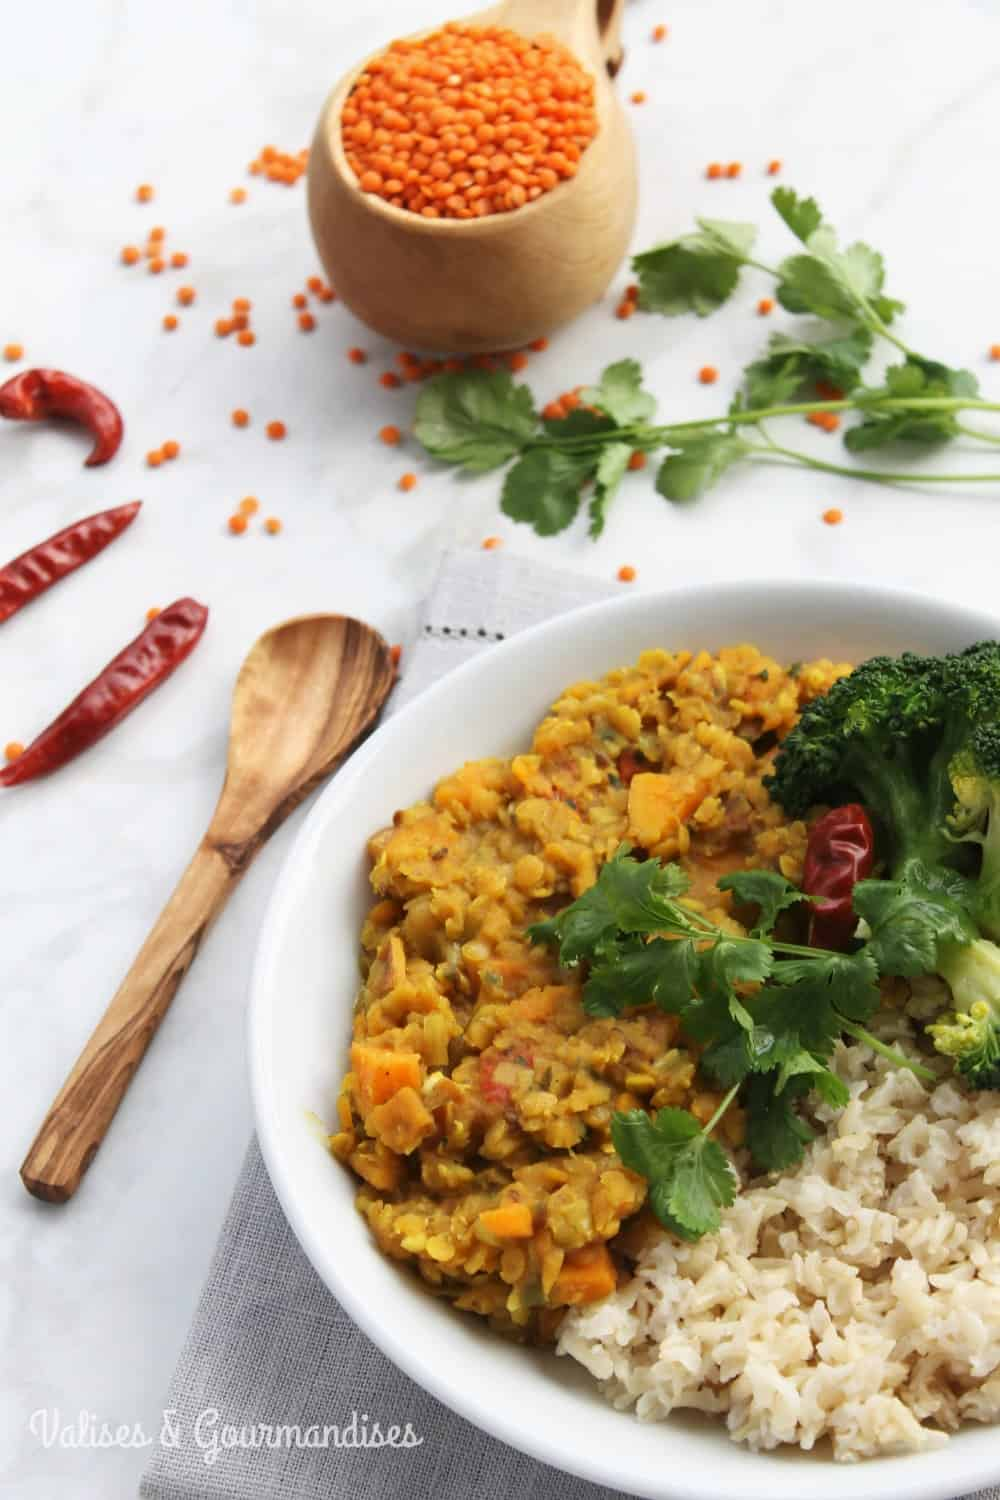 This healthy red lentil dal is an easy & delicious way to include more beans into your diet. The addition of sweet potato & leek takes it to the next level!